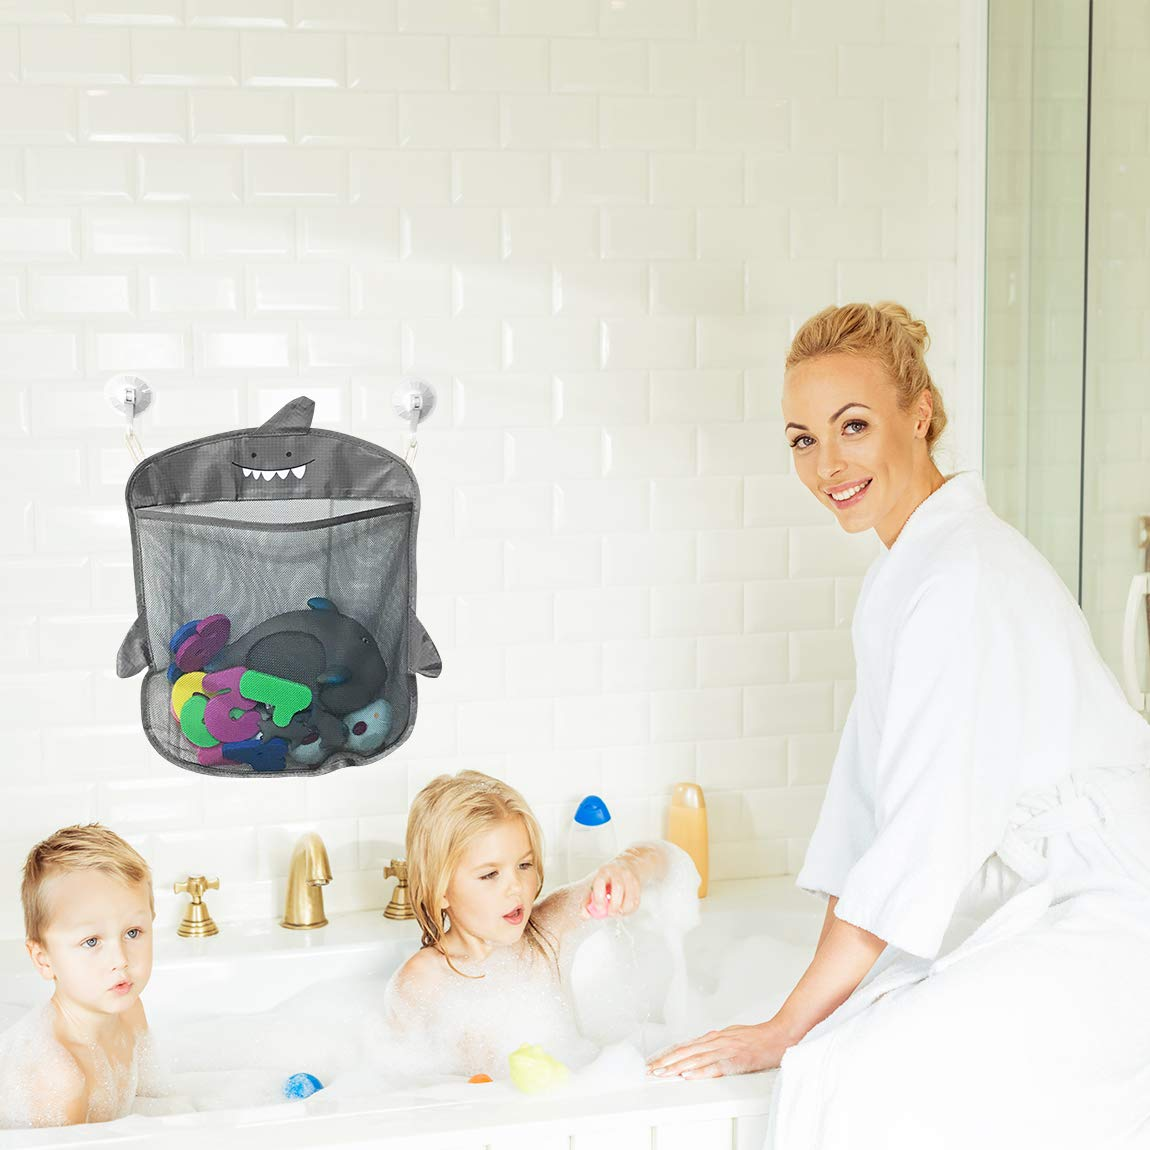 HOT Baby Bath Toys Bathroom Storage Bags Knitted Net Mesh Bag Make Up Organizer Container 39X35CM